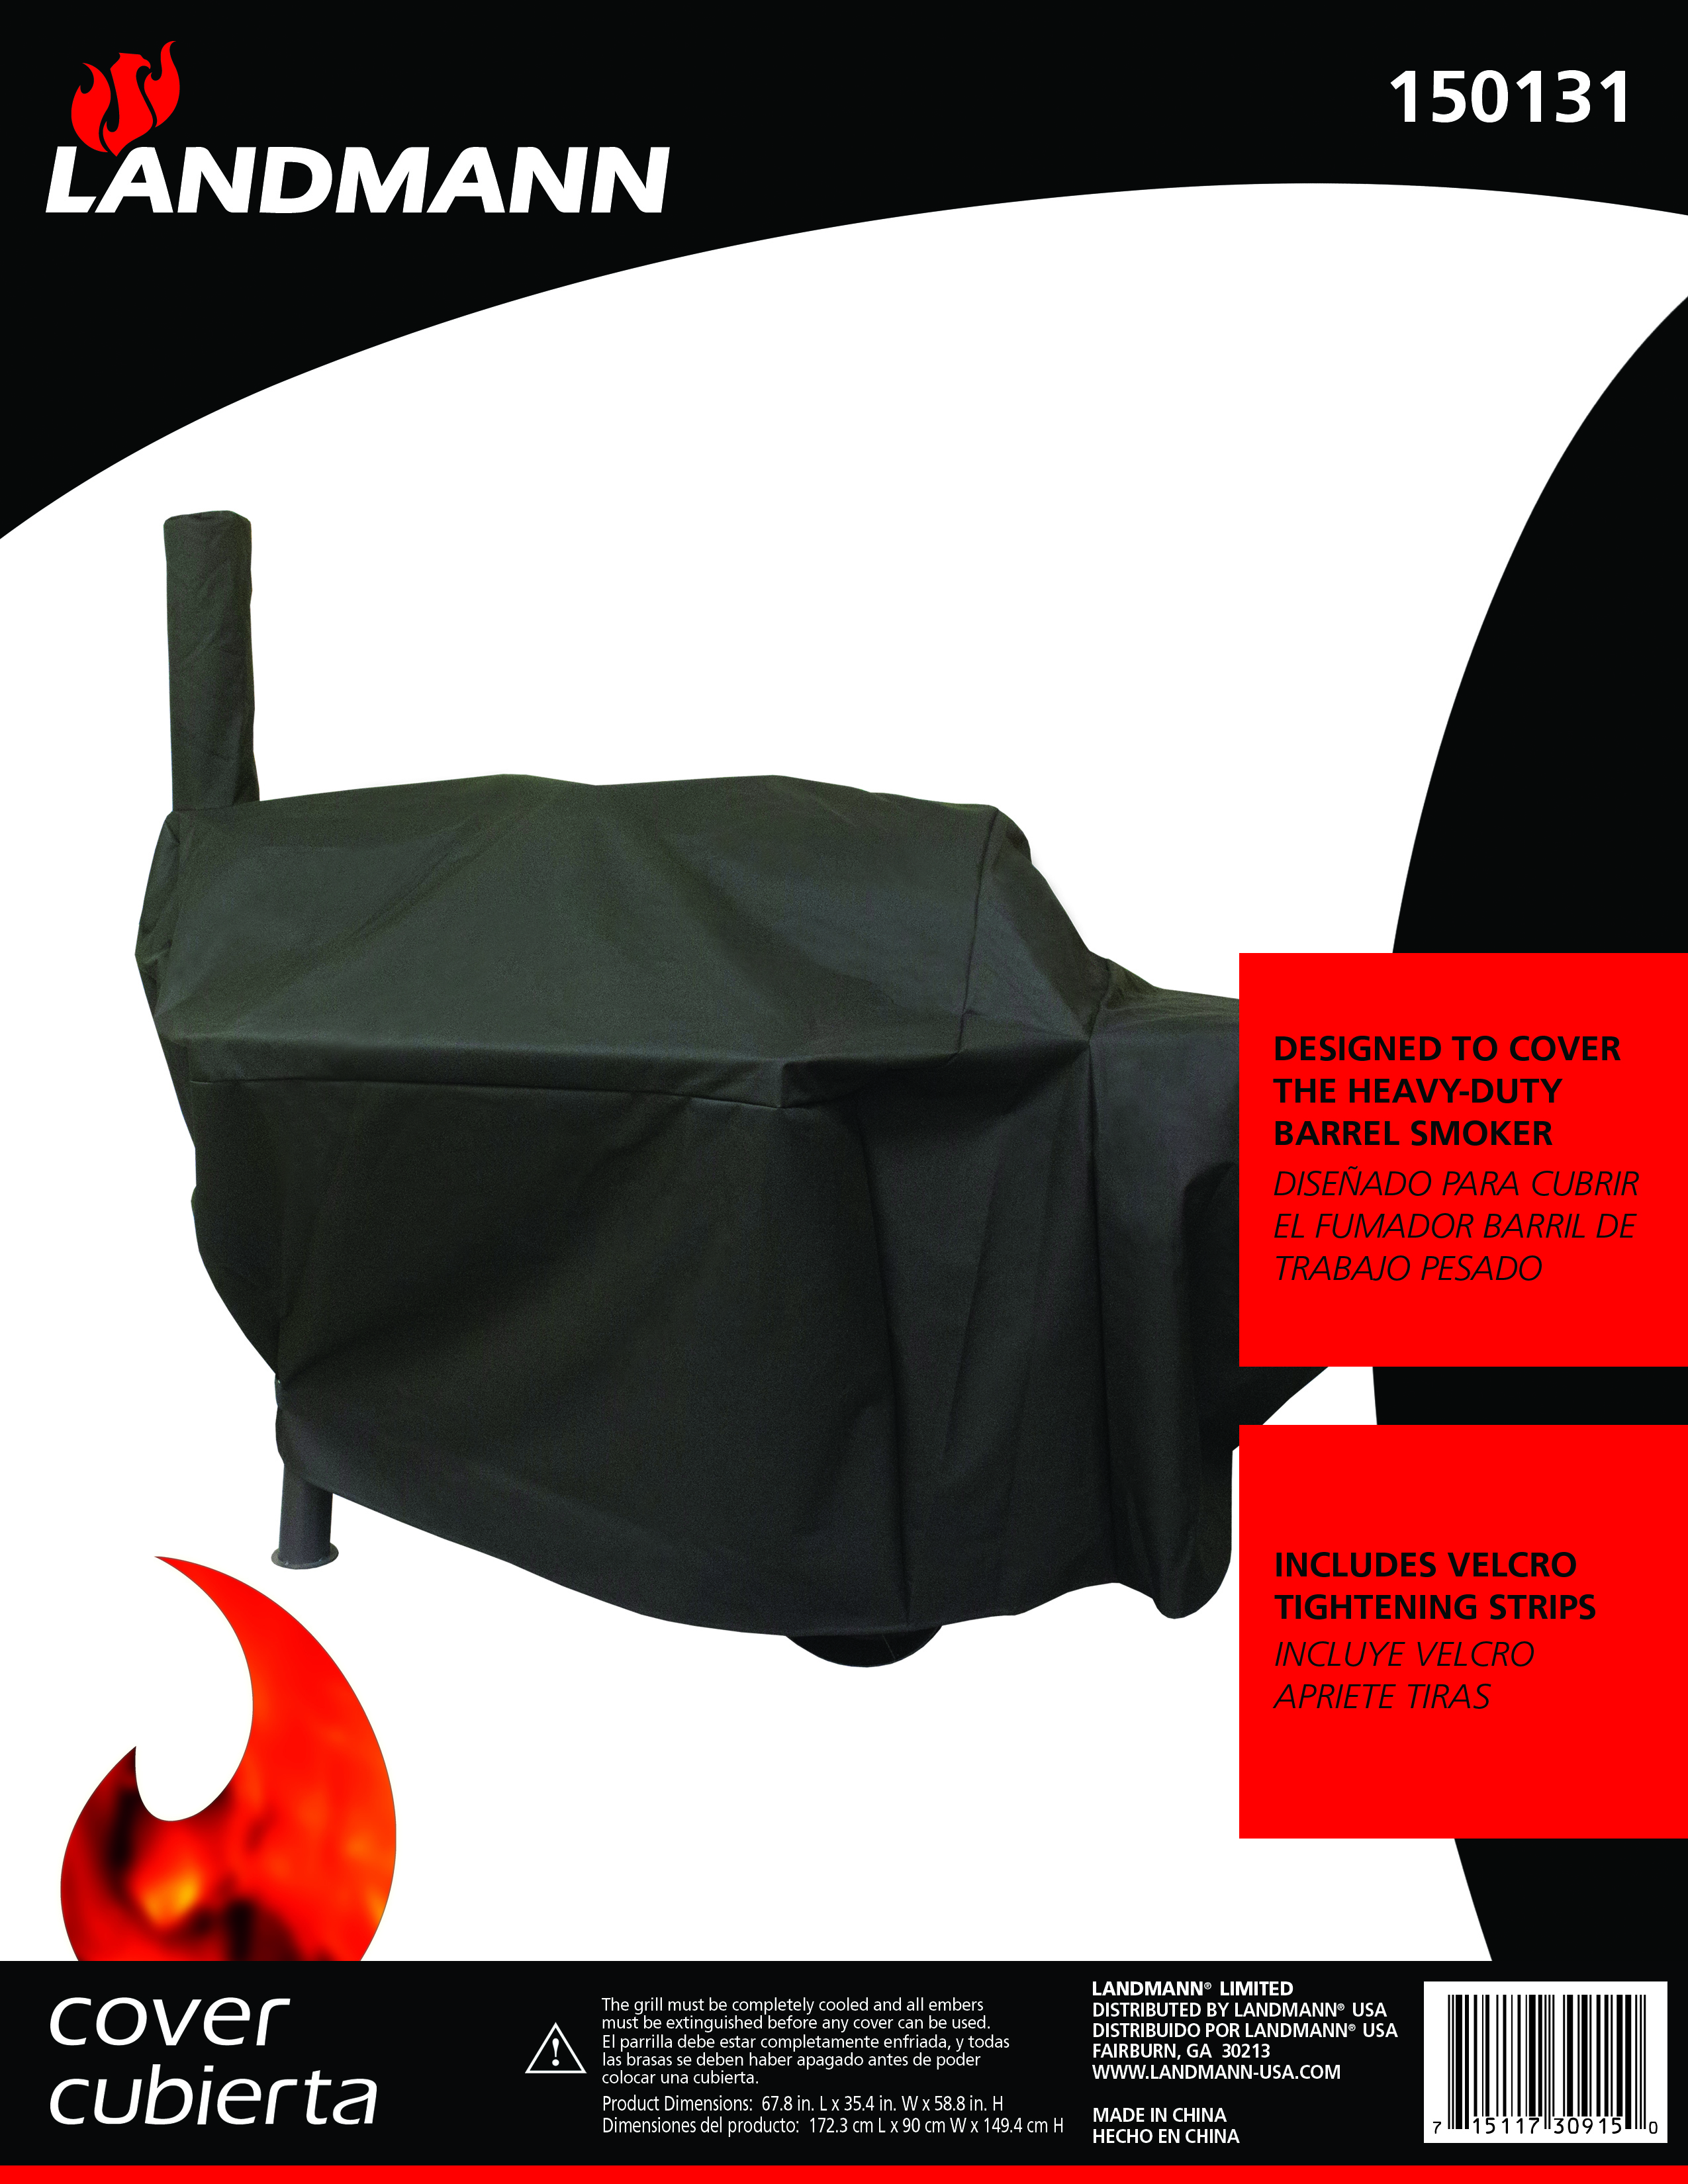 heavy duty barrel smoker cover